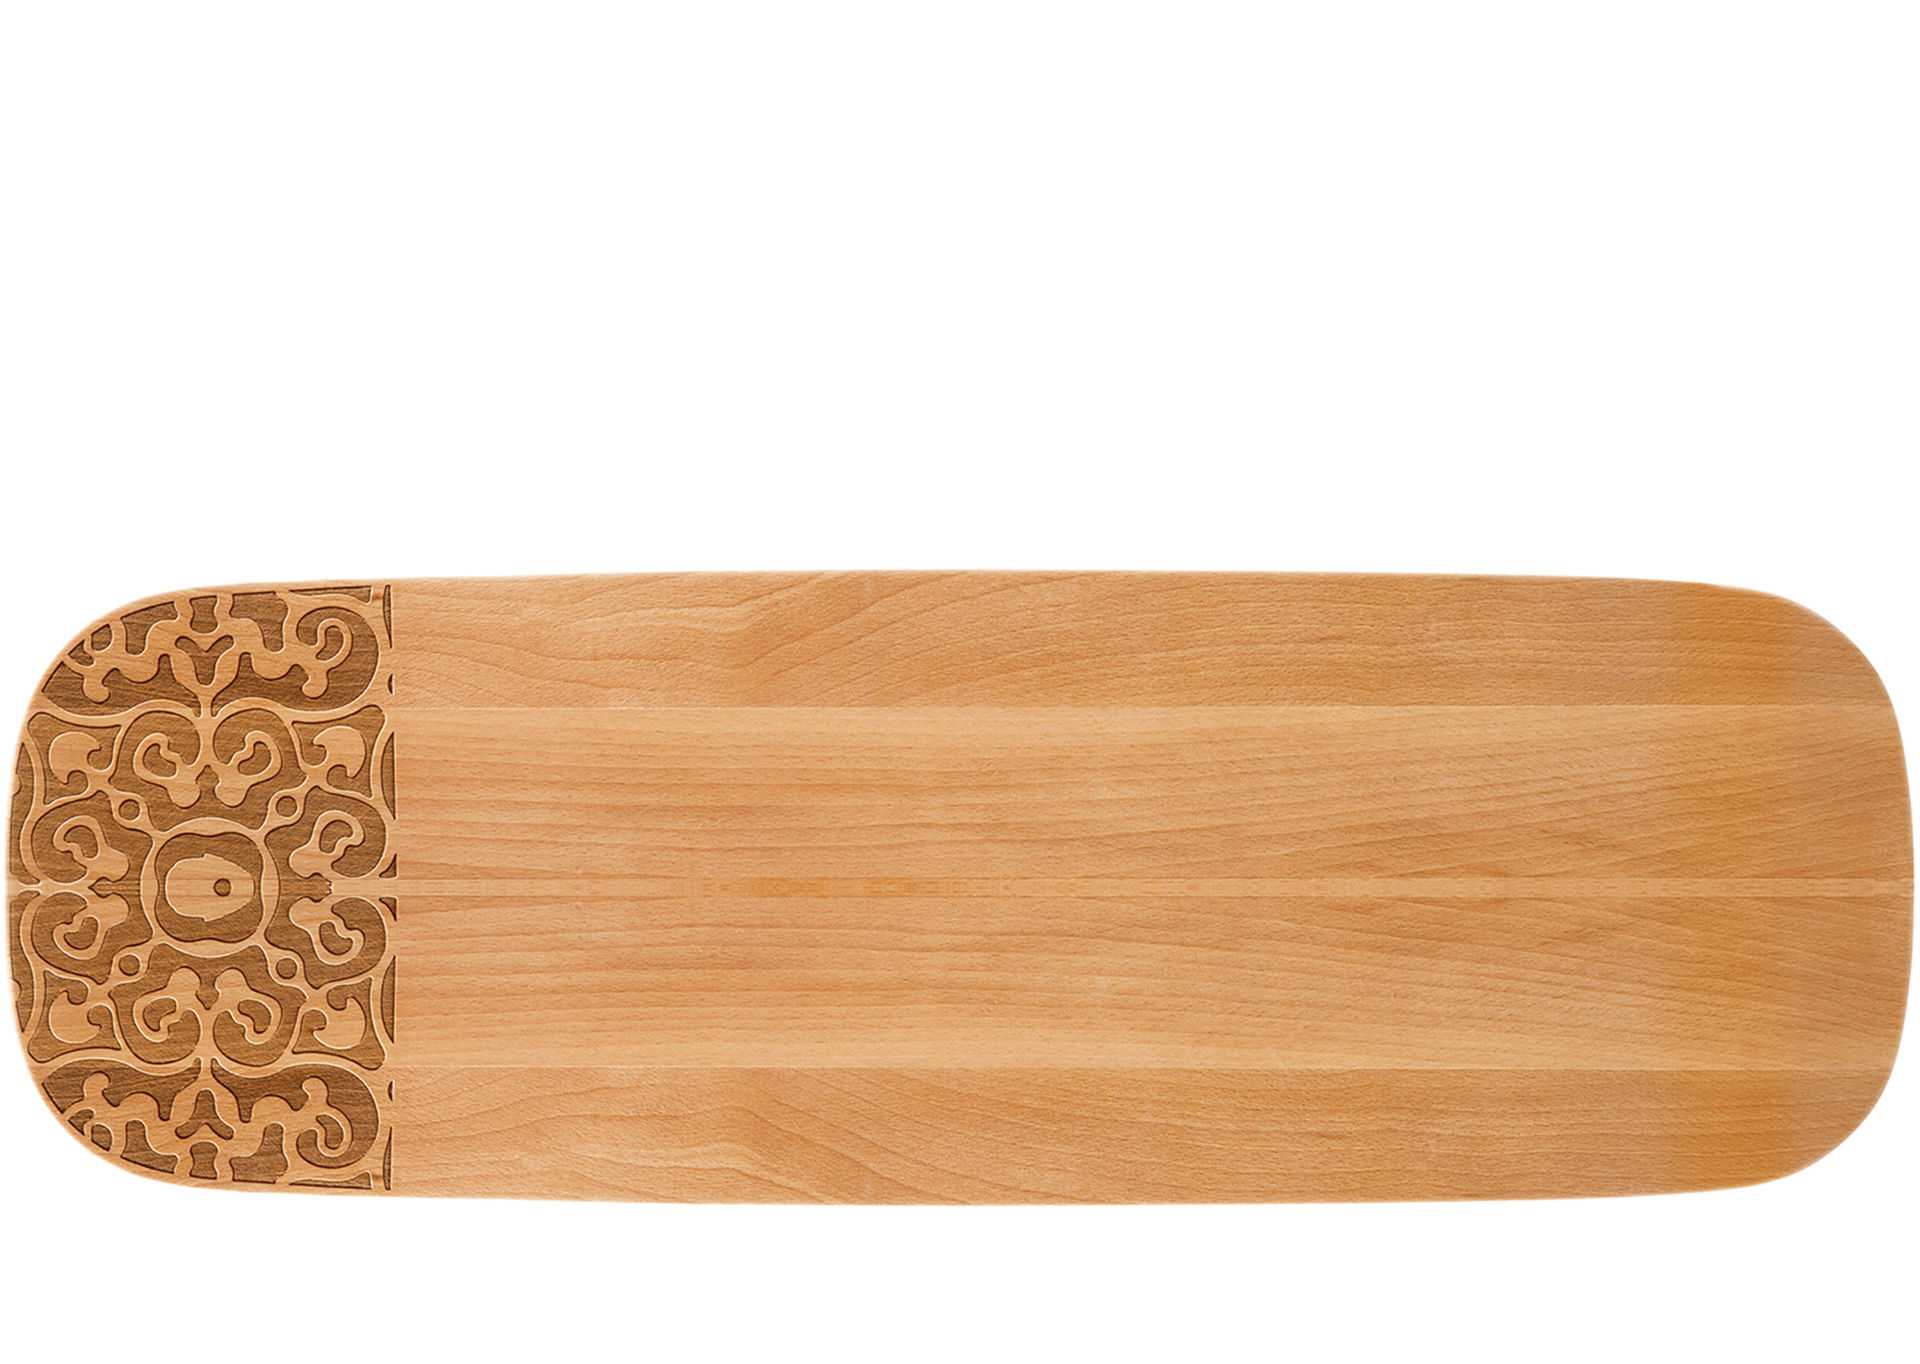 ALESSI Dressed - Serving board #1